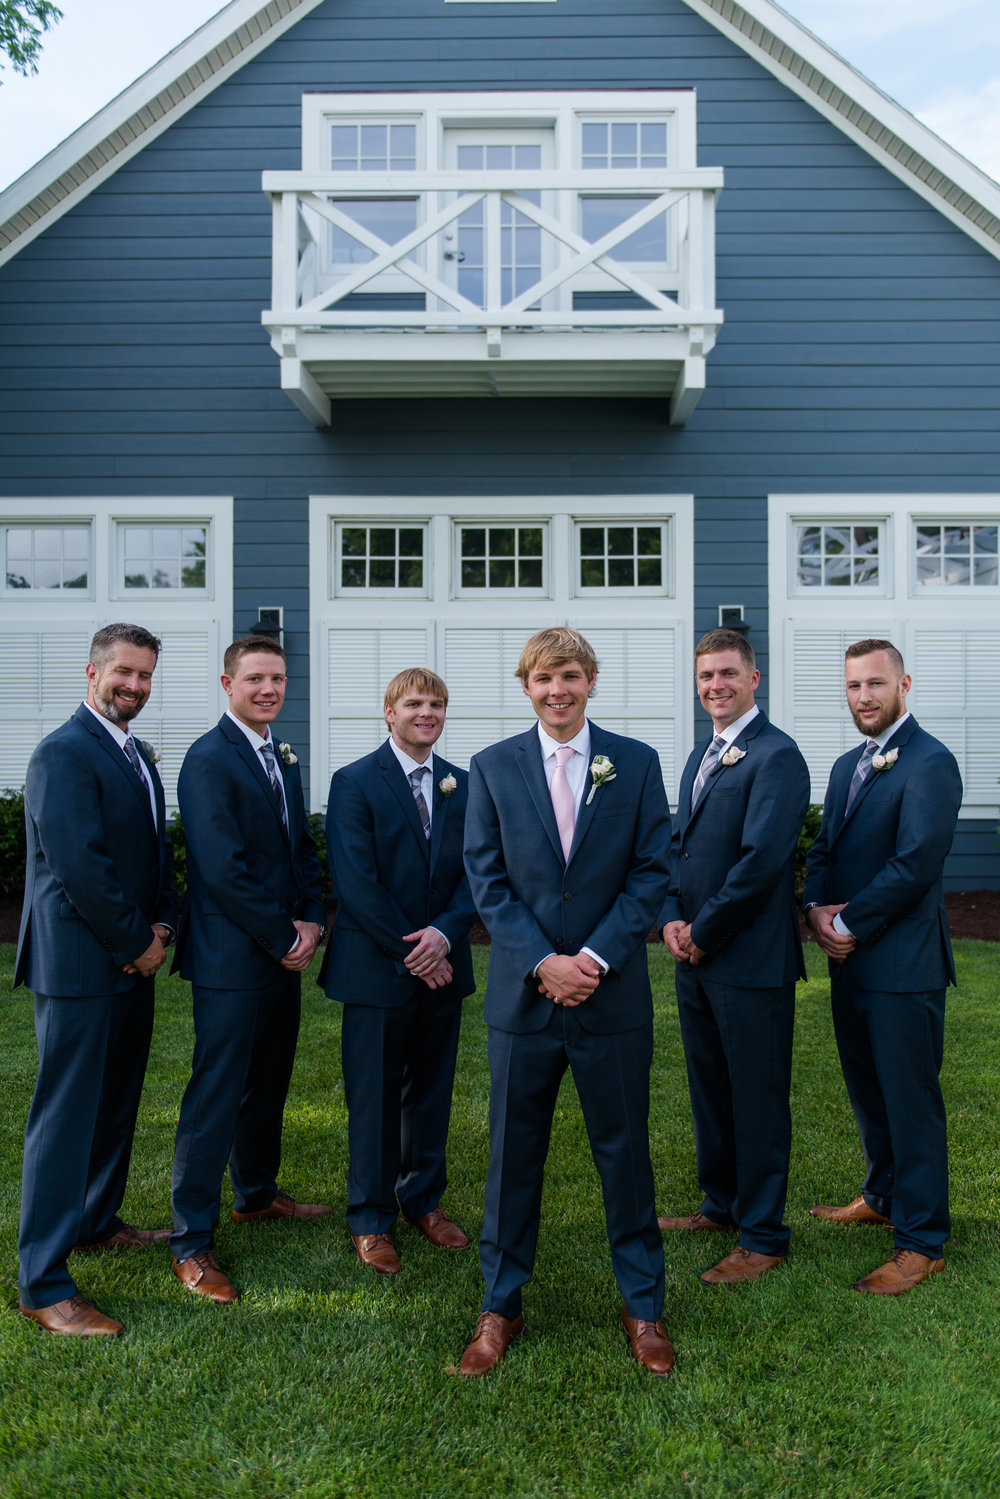 The groom and groomsmen stand in dark blue suits in front of a blue barn at the chesapeake bay beach club in stevensville, md